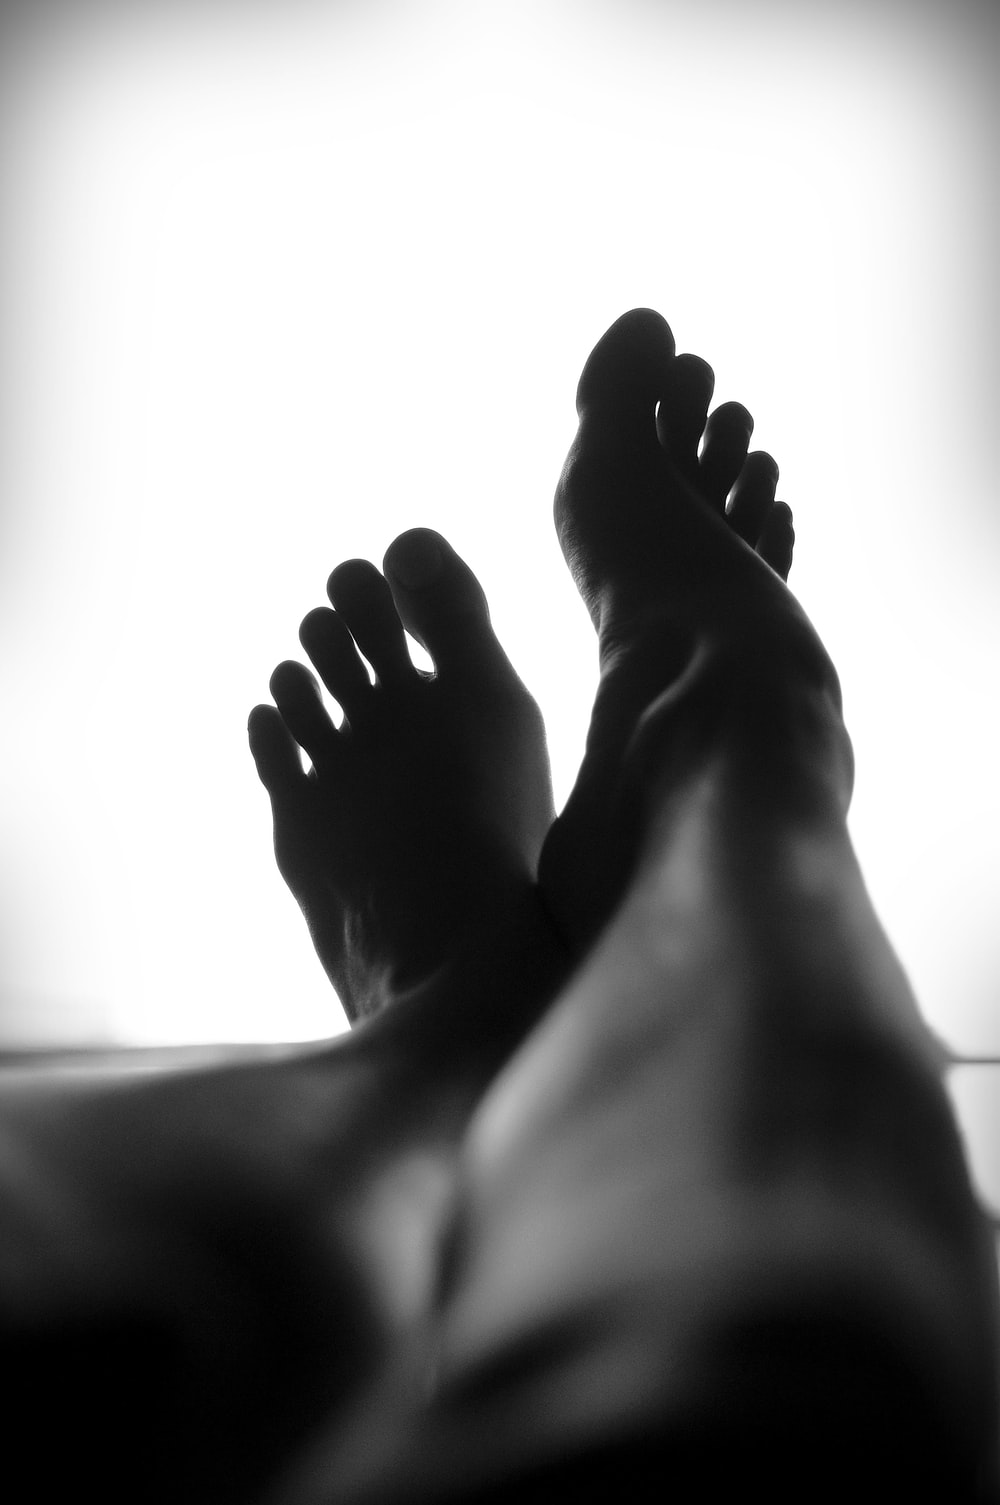 silhouette of person's feet against white background